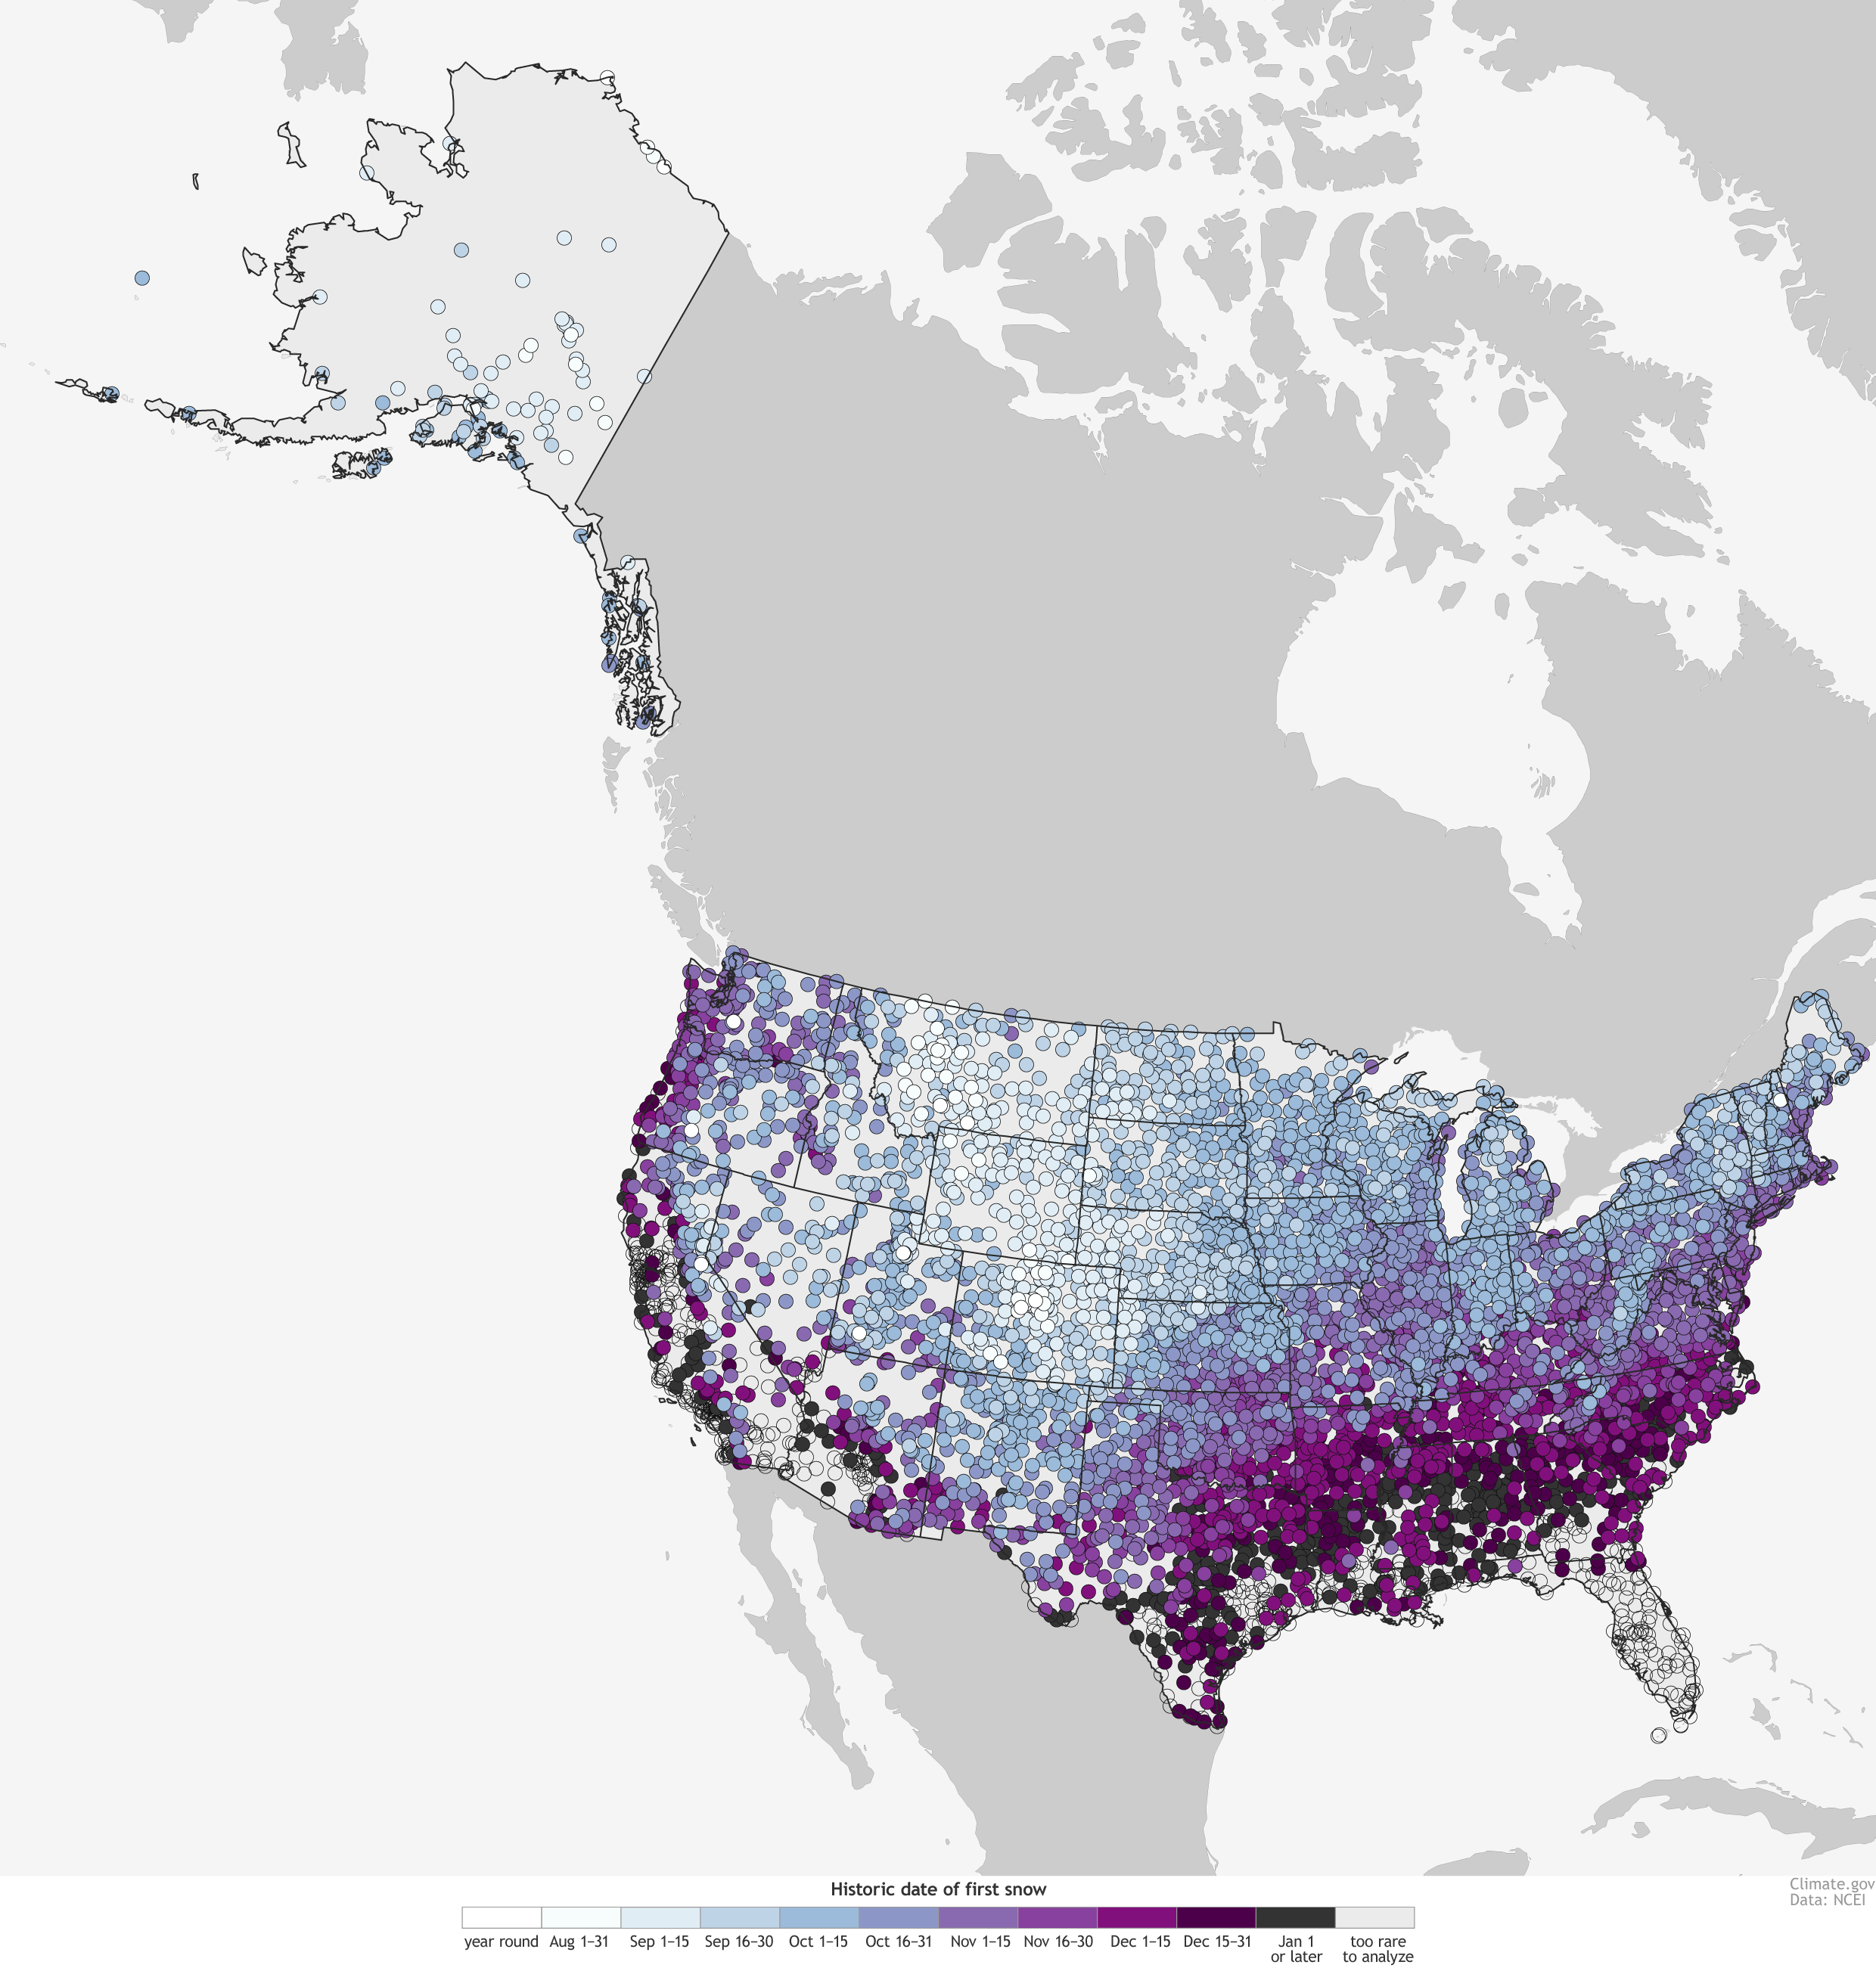 map with colored dots showing historic first date of snow for hundreds of us locations